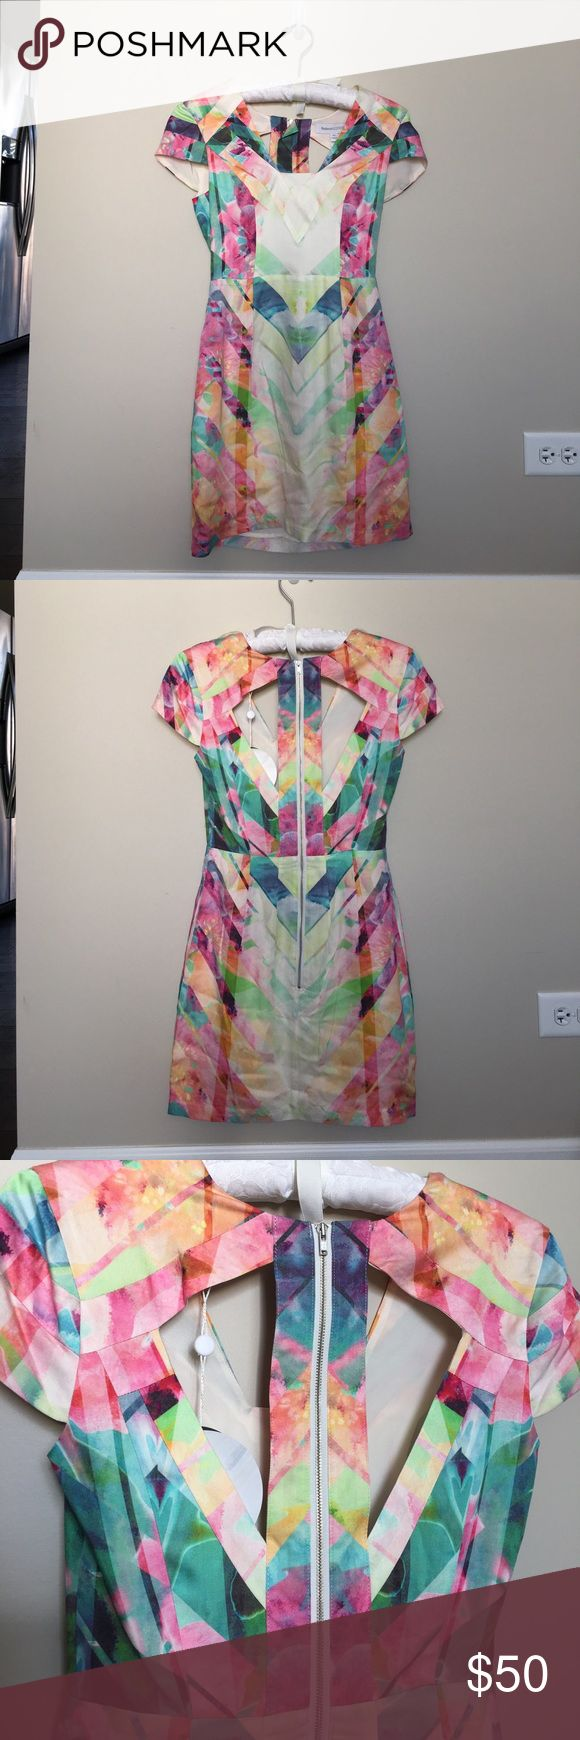 """Finders Keepers """"Original Sin"""" Mini Dress Brand new with tags! Finder's Keepers minidress in multiple pastel colors. Such a cute dress for summer events.  Fun cutout back pattern. Finders Keepers Dresses Mini"""